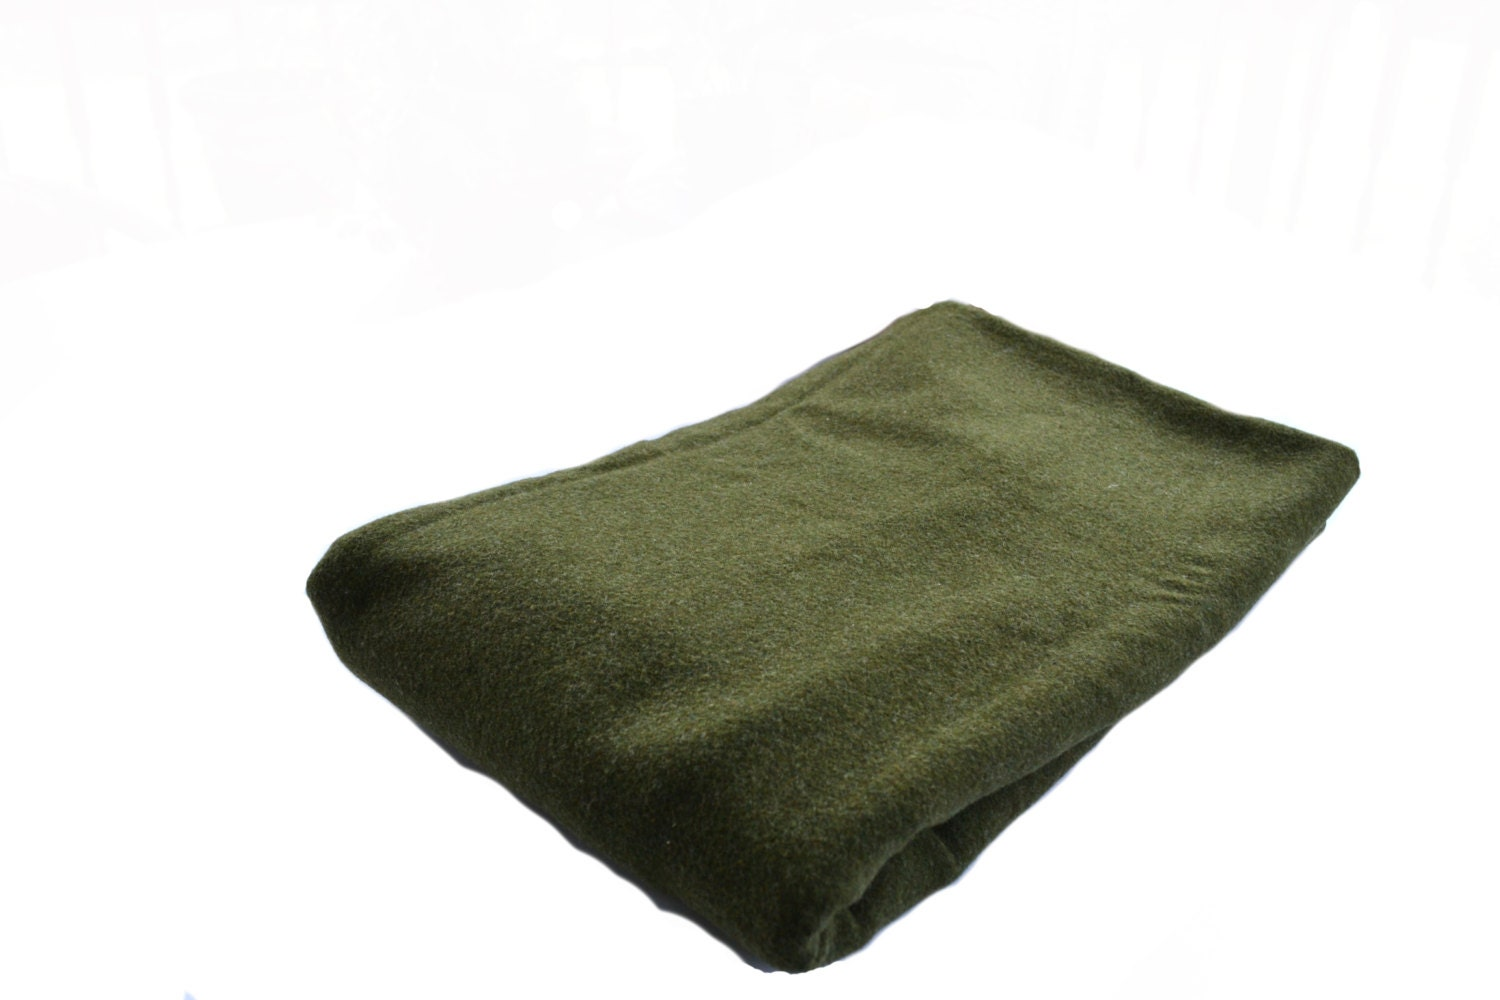 Military Blanket Wool Blanket Army Blanket Green Blanket